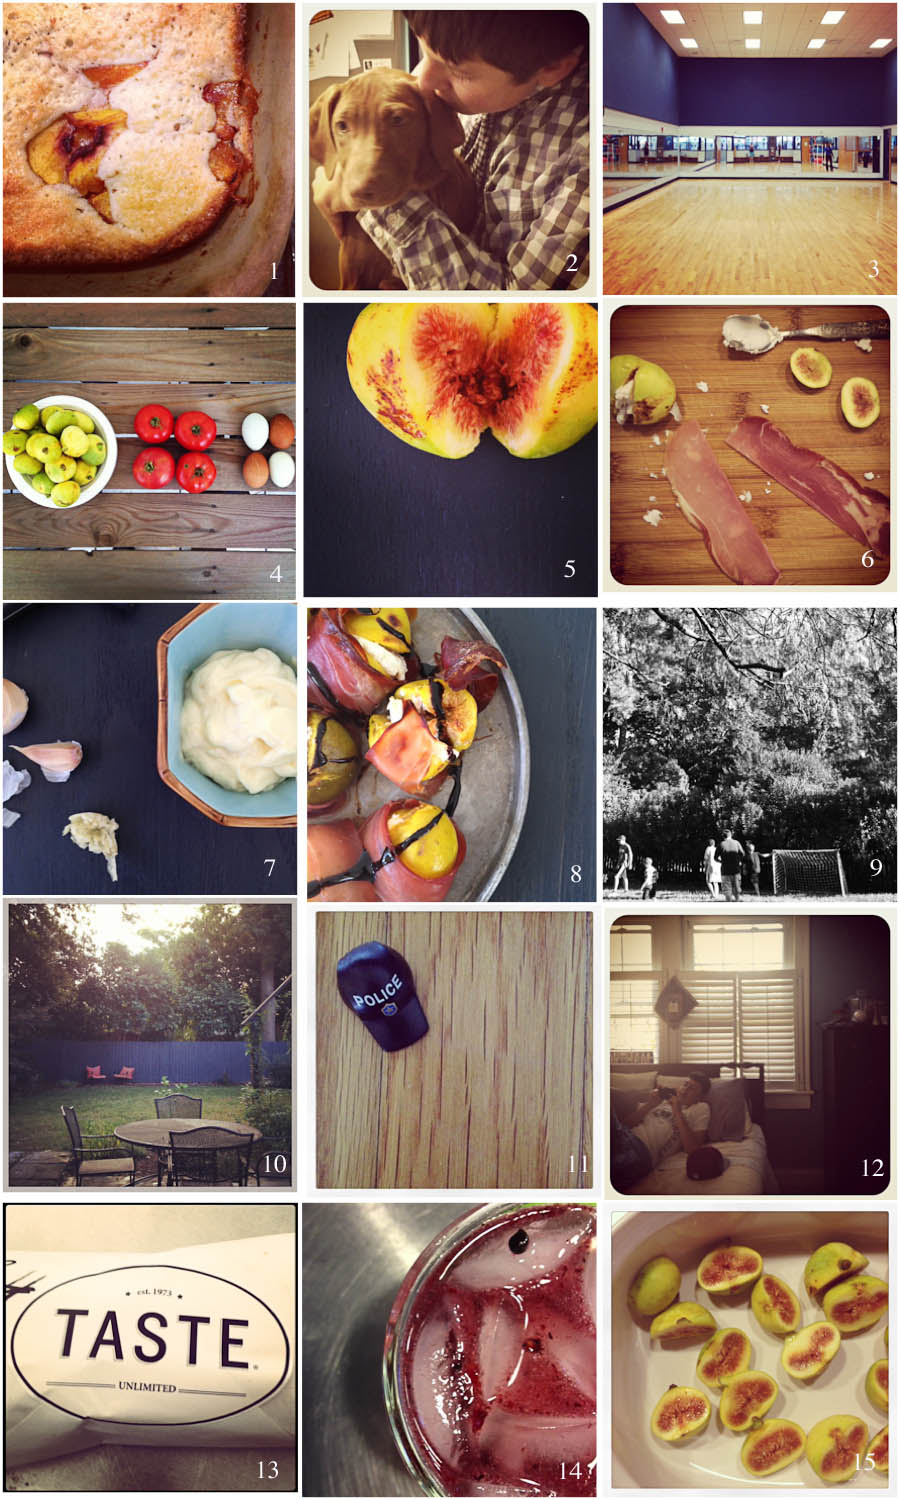 1. best meeting ever | 2. meet zoey | 3. friday night workout | 4. gorgeous gifts | 5. glorious color | 6. meal prep | 7. cheater's aioli | 8. figs | 9. backyard evening | 10. autumn morning | 11. unexpected treasure | 12. sleeping rearrangement | 13. lunch | 14. reward | 15. back with the figs